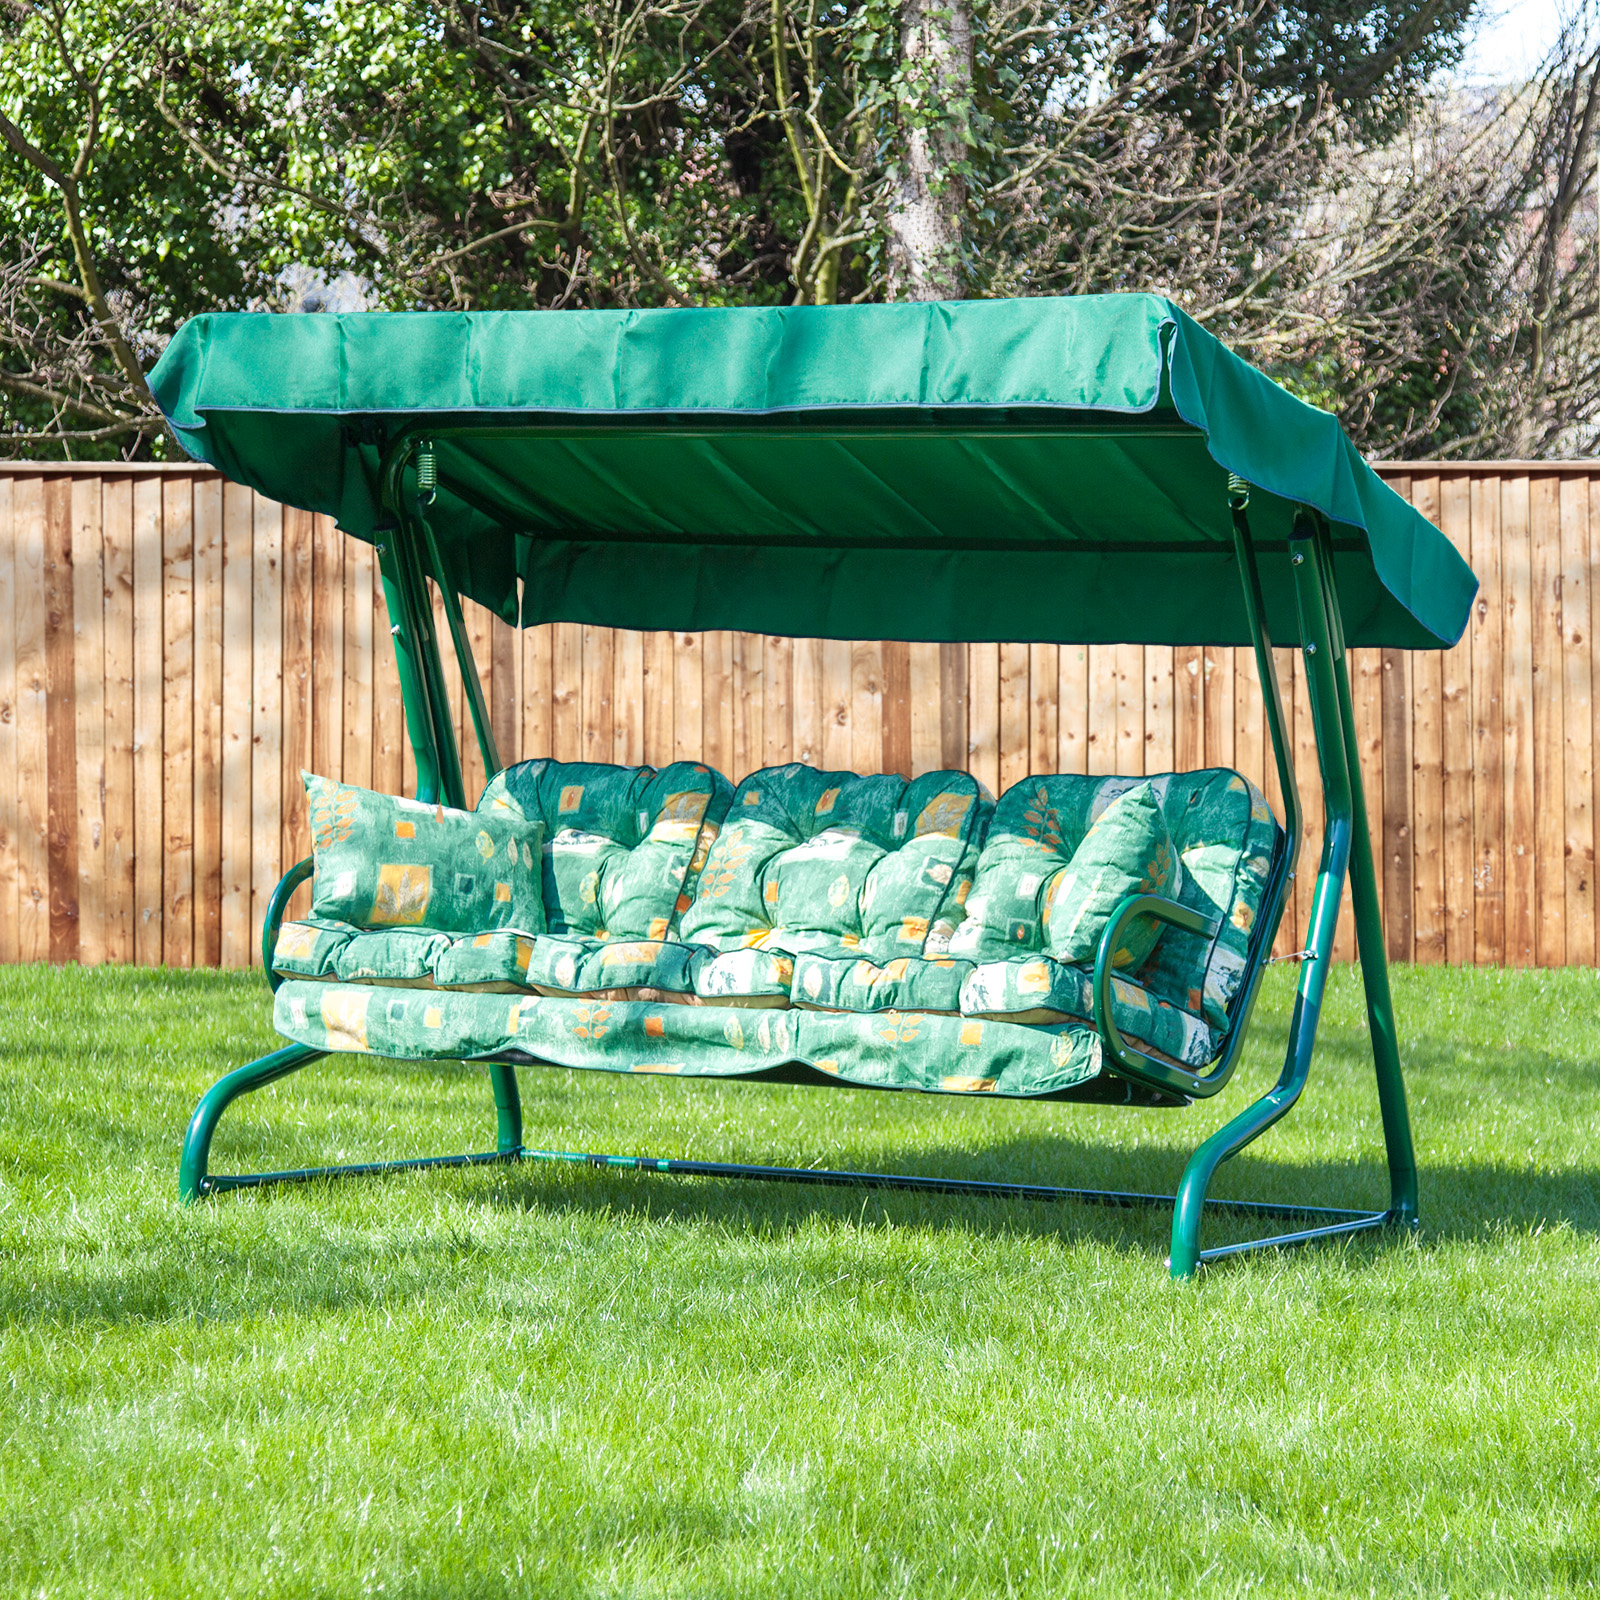 Outdoor adult swing replacement seats